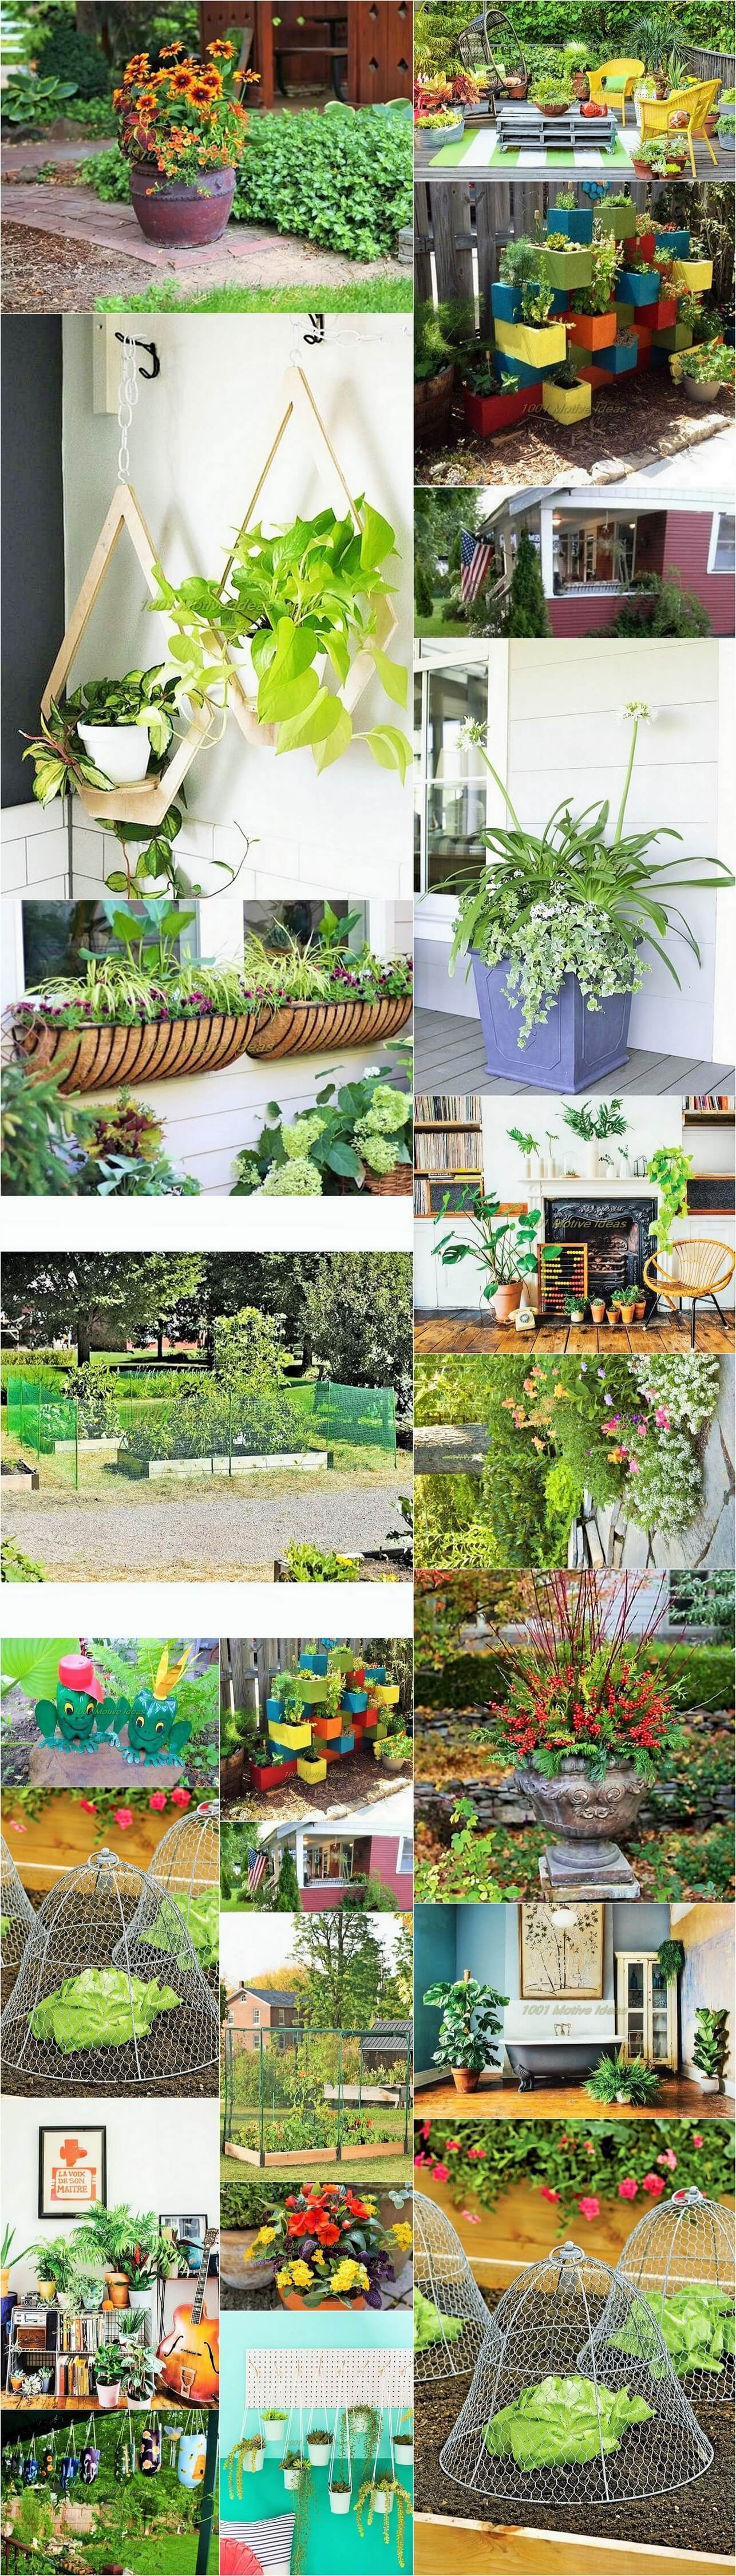 DIY How to make decorations garden ideas